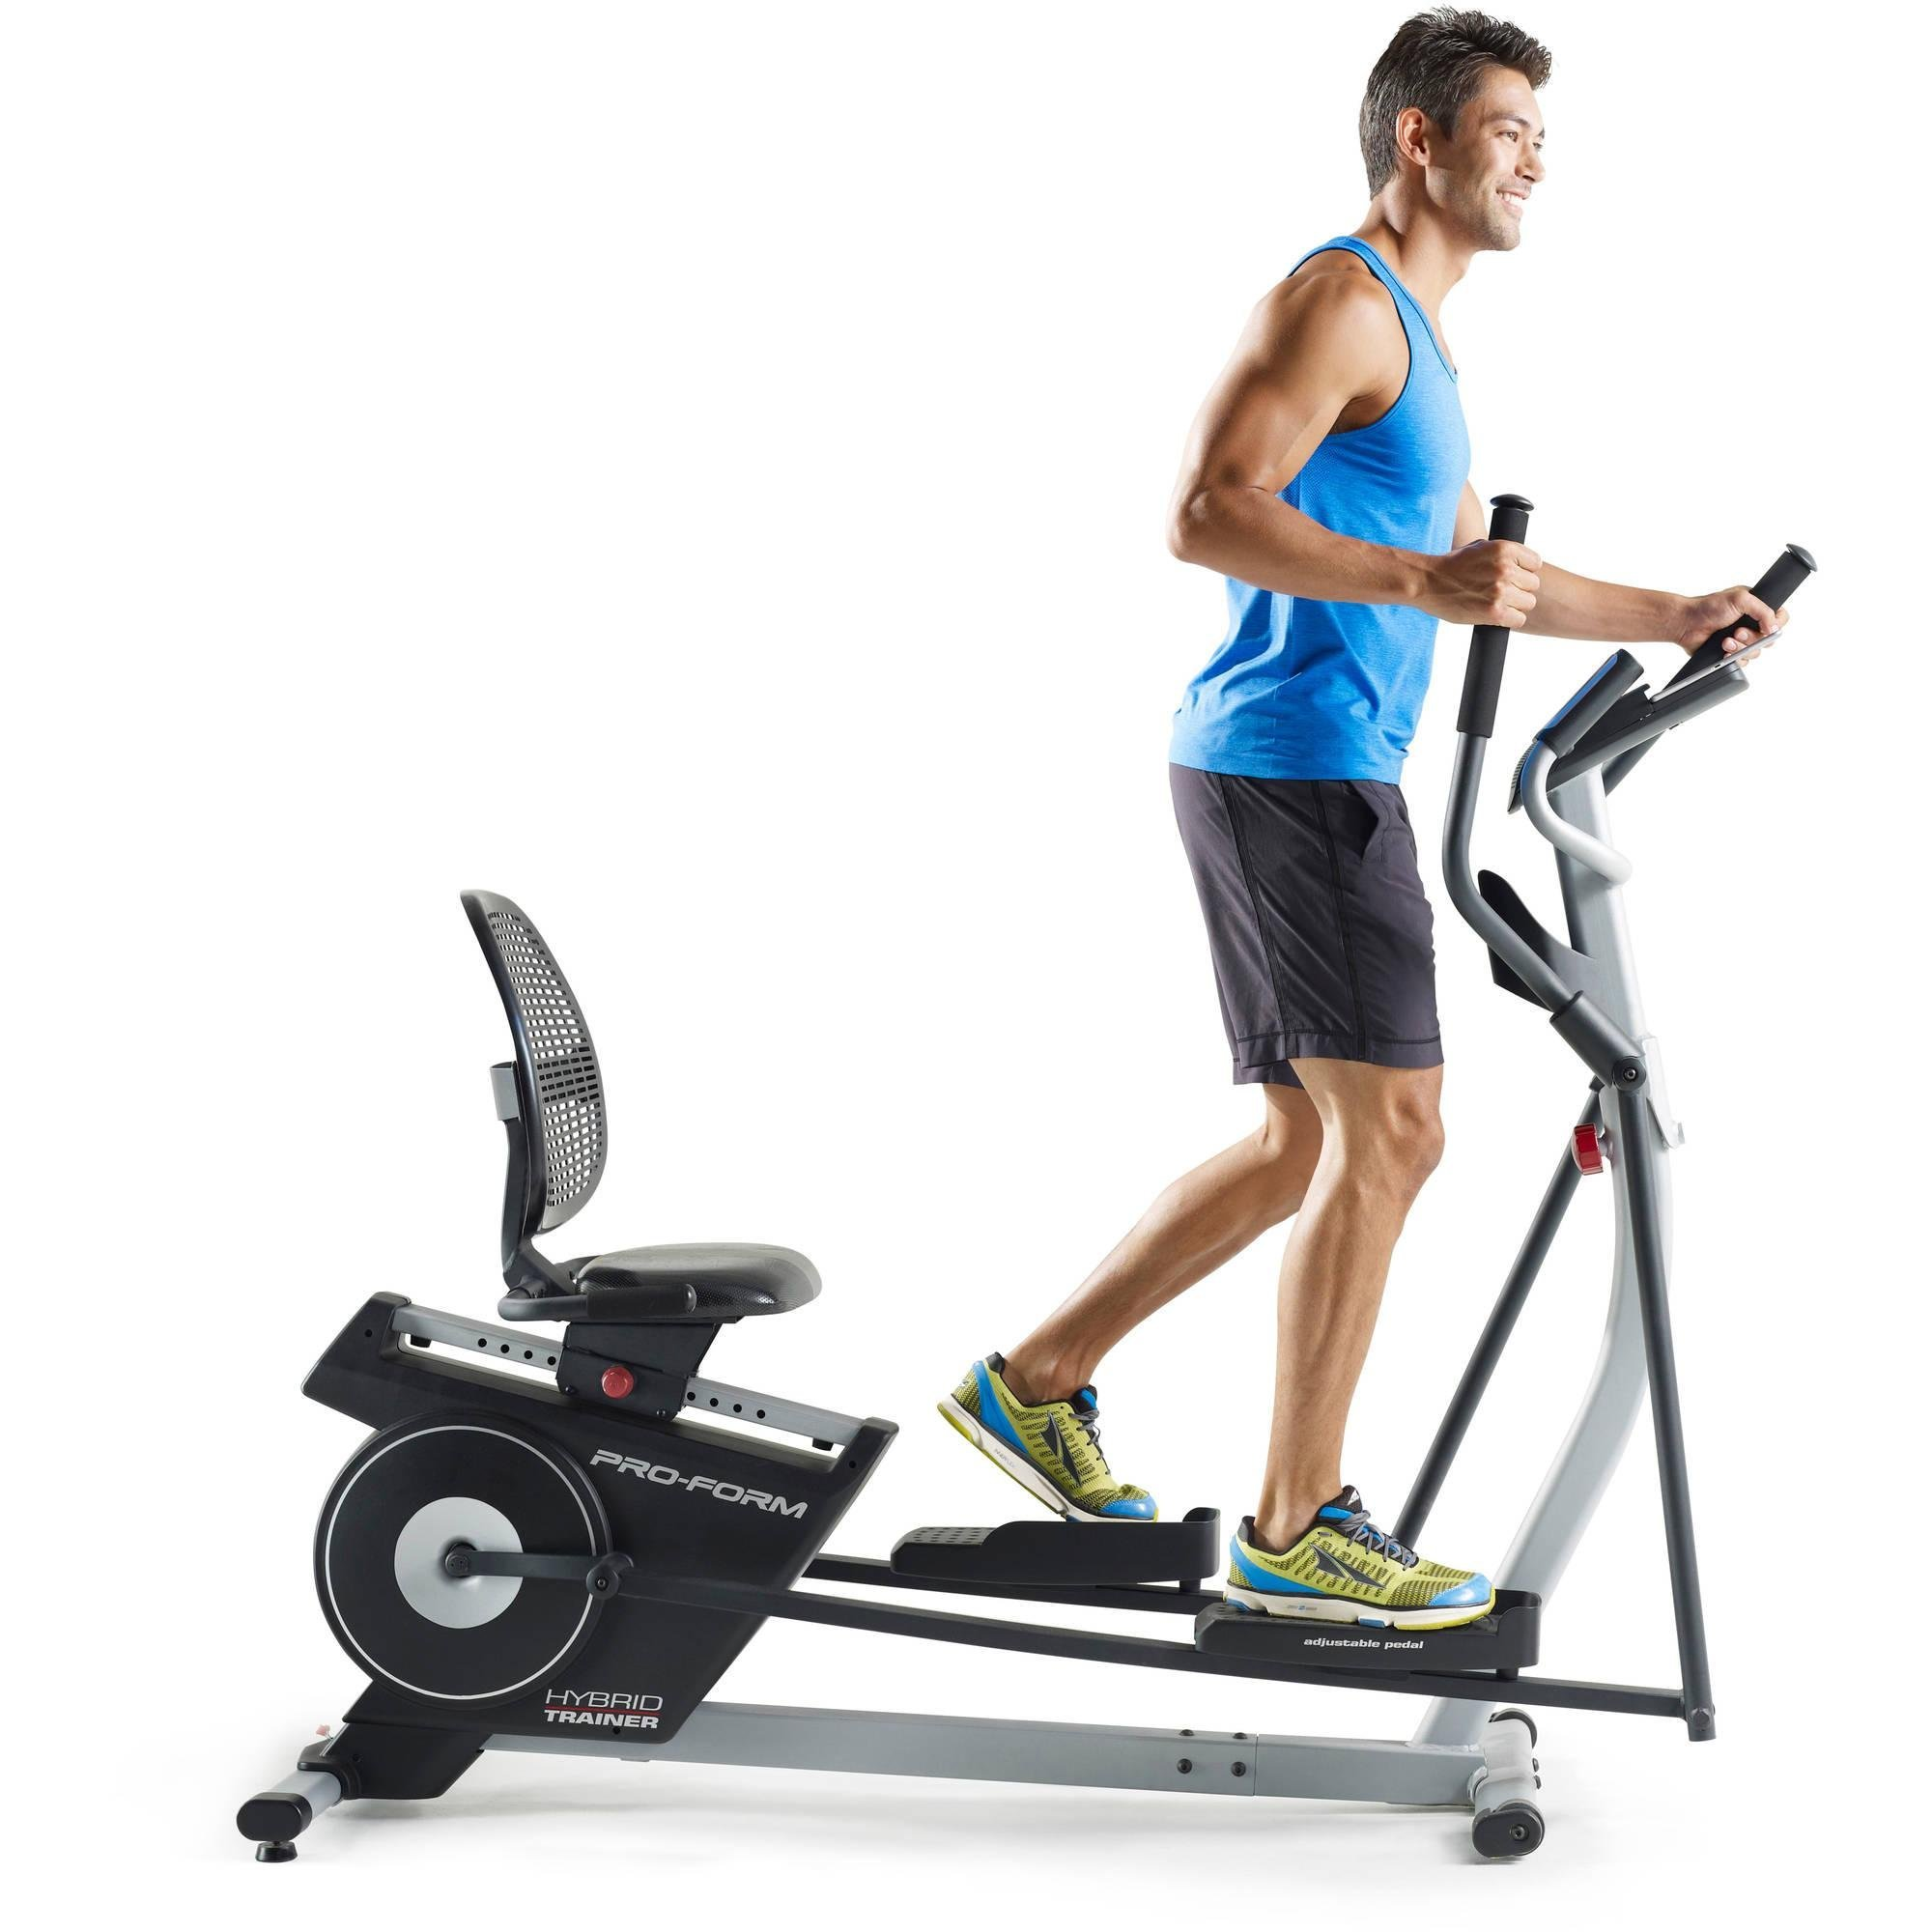 2-in-1 Double Elliptical and Recumbent Bike, Black by ProForm (Image #4)